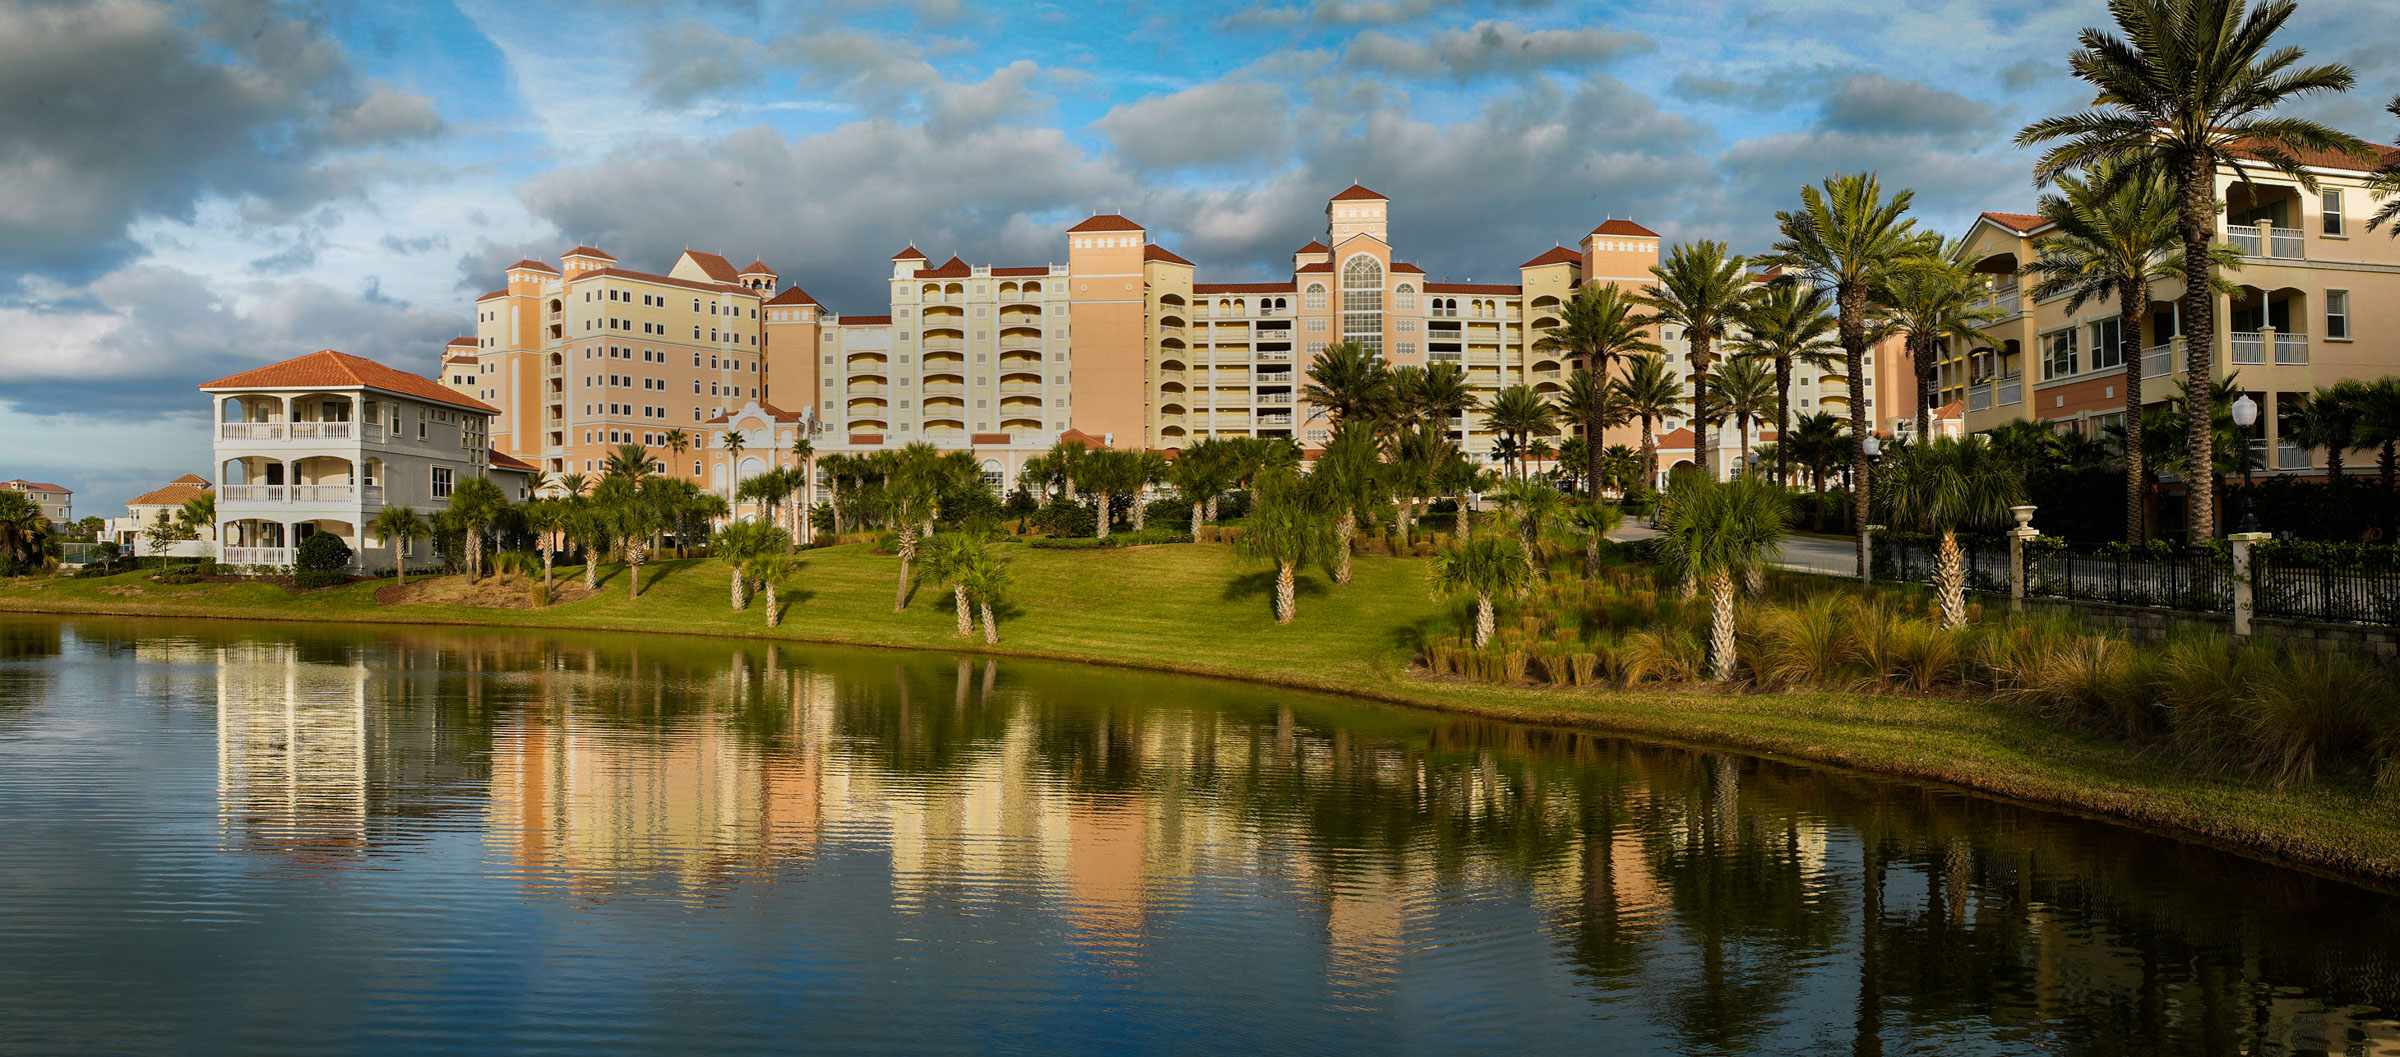 Resort photograph made by Steven Martine Florida advertising architecture photographer